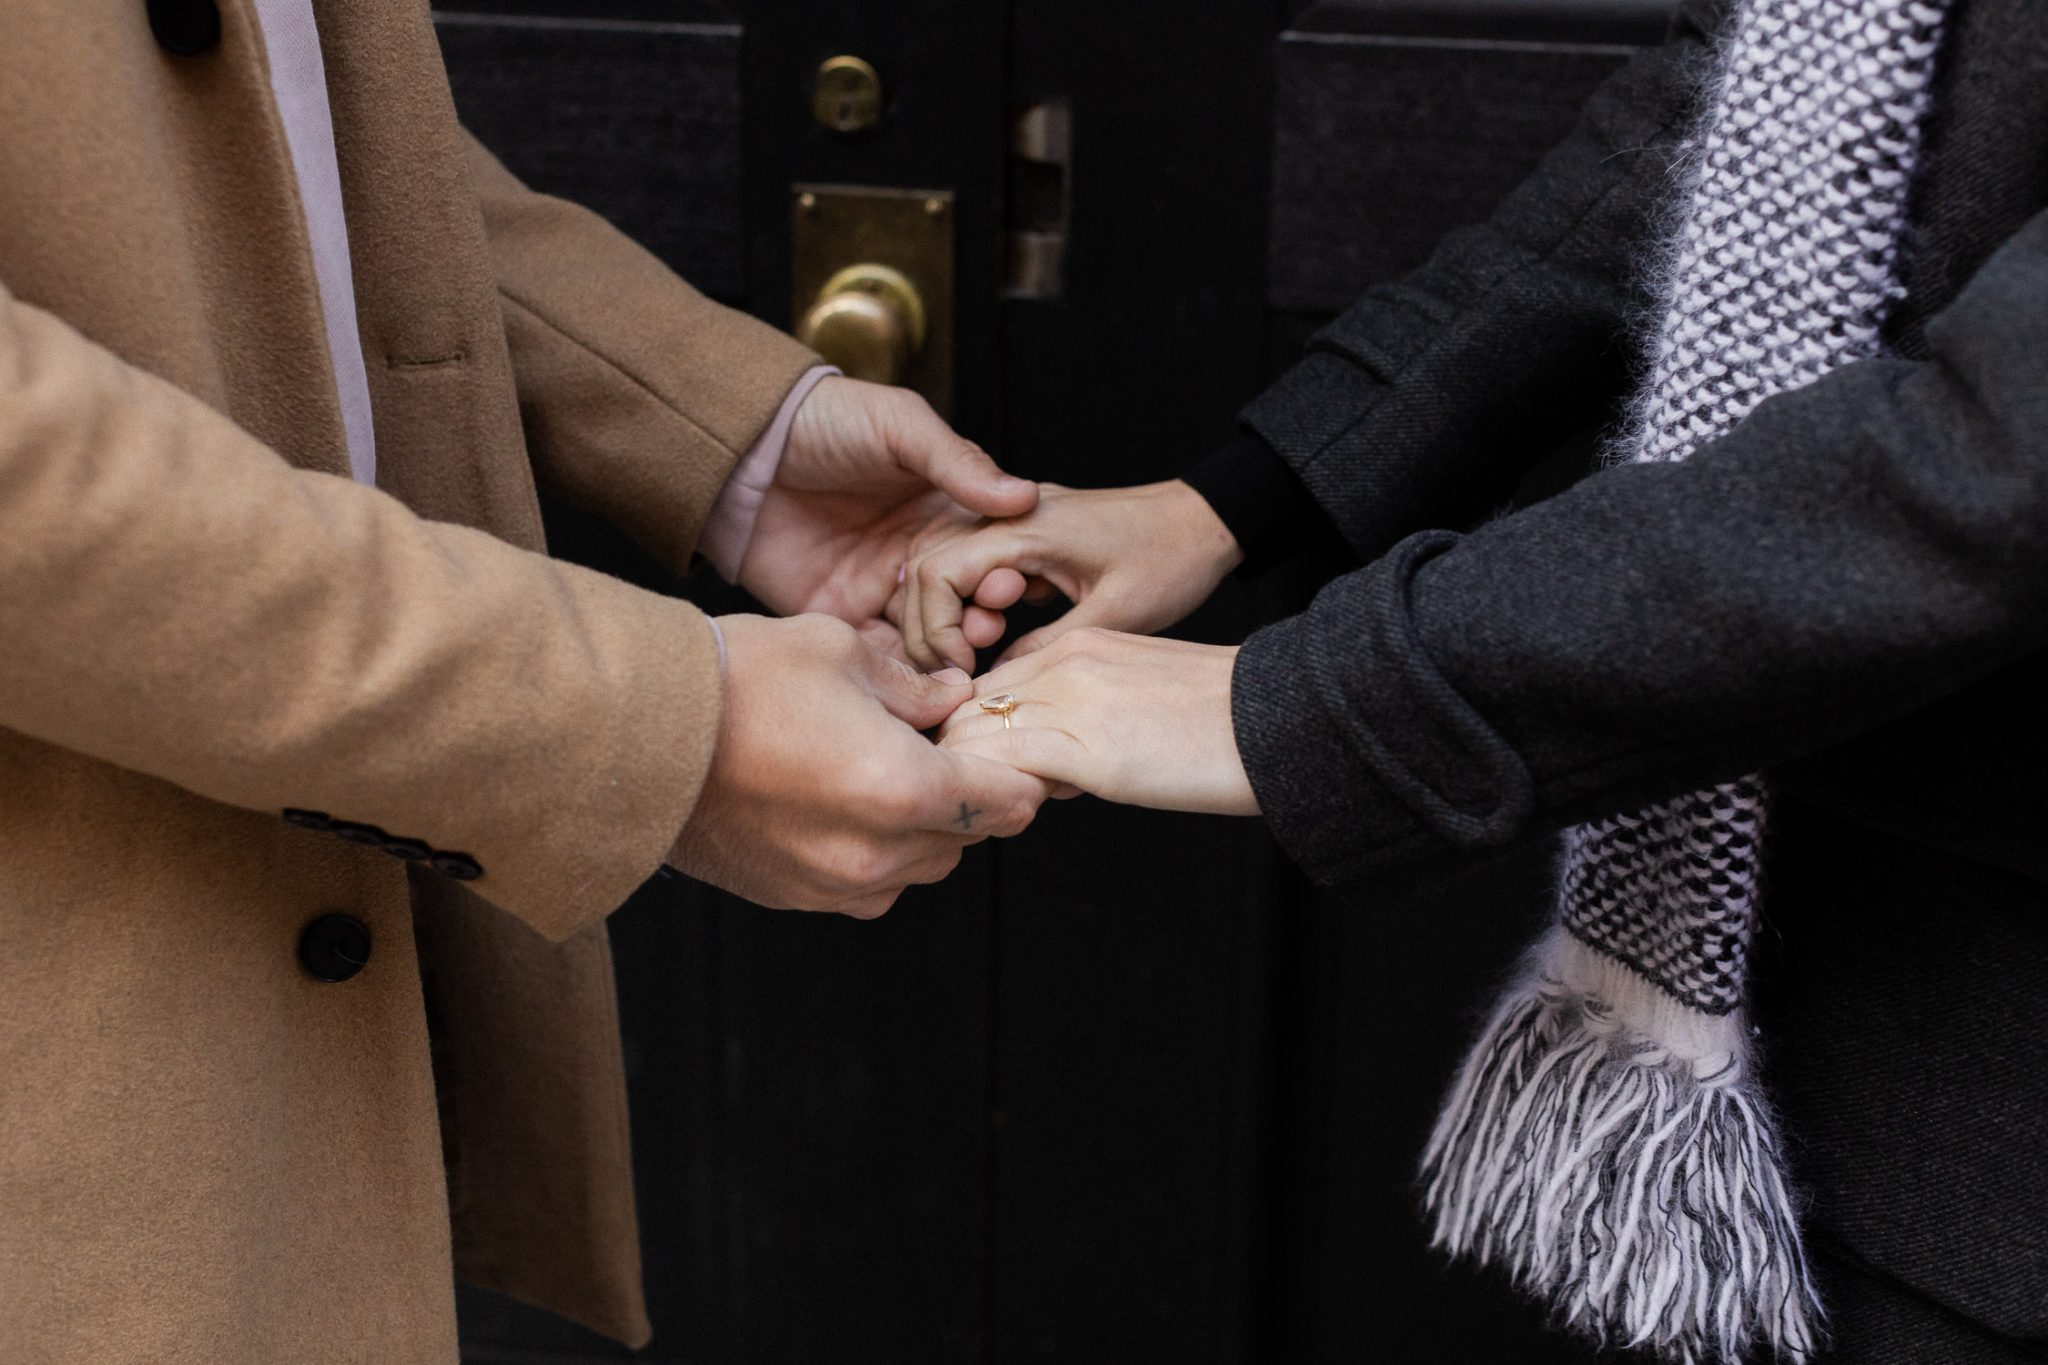 Hands joined together celebrating their future together